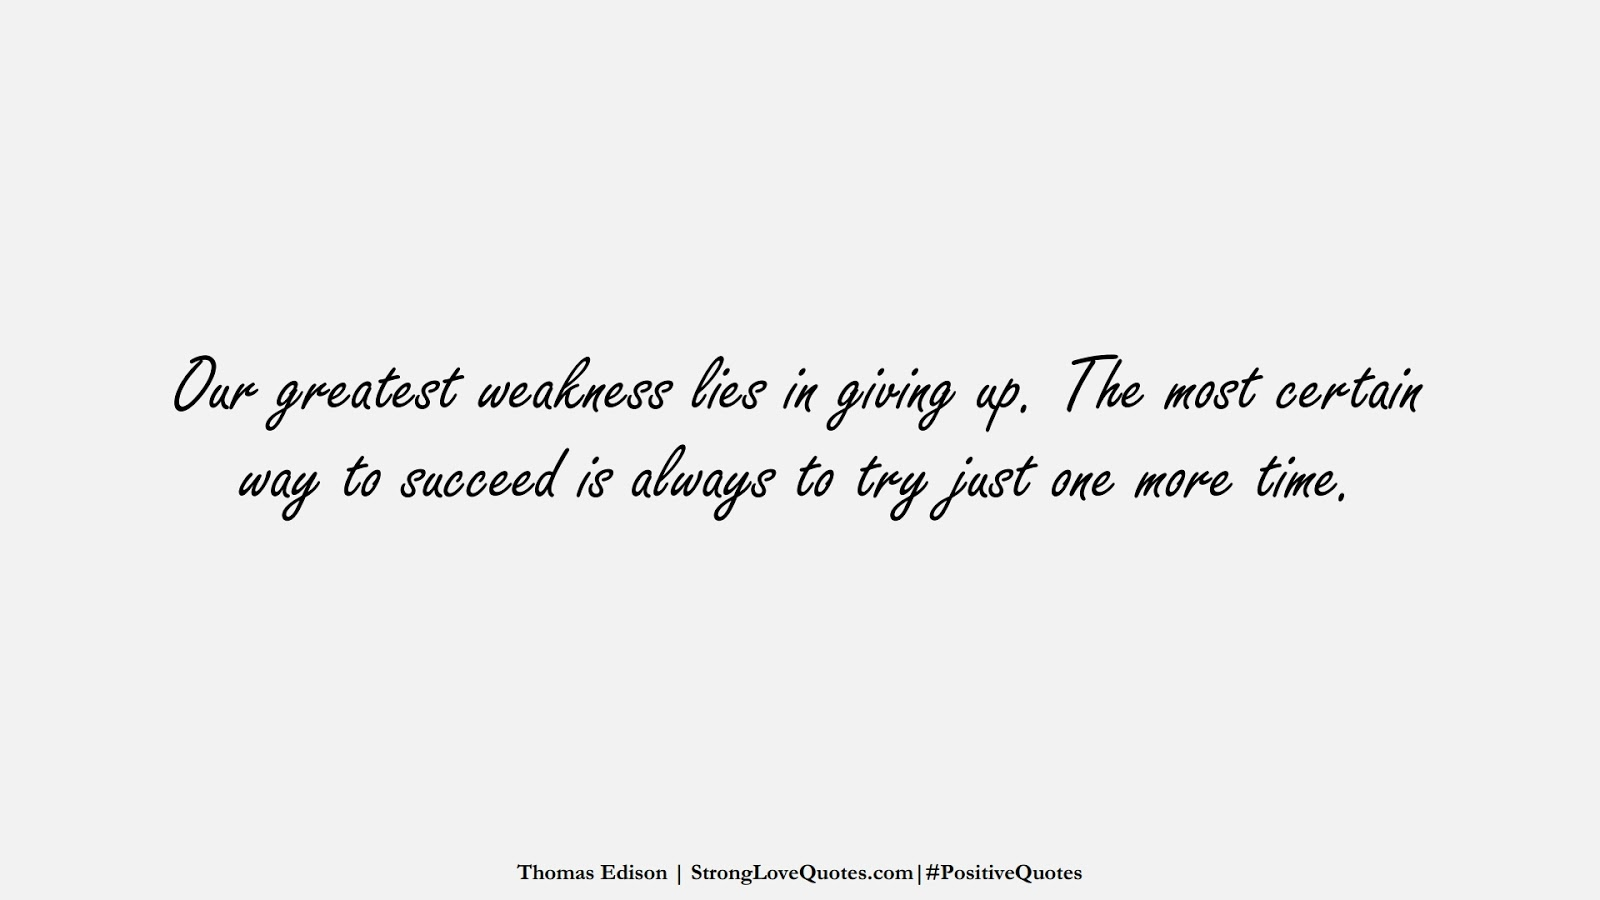 Our greatest weakness lies in giving up. The most certain way to succeed is always to try just one more time. (Thomas Edison);  #PositiveQuotes